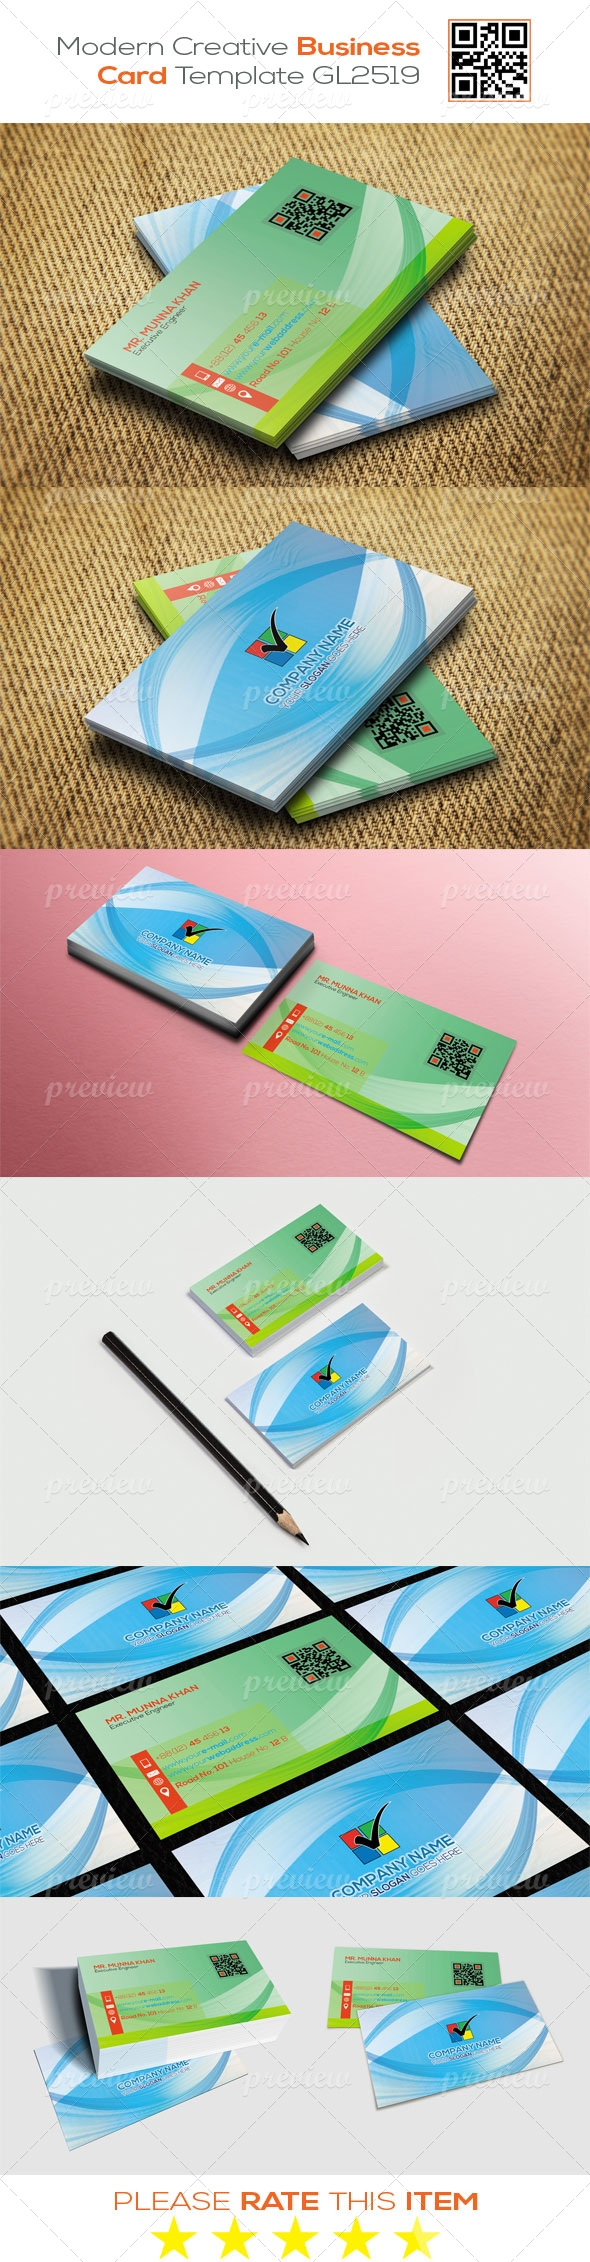 Modern Creative Business Card Template GL2519